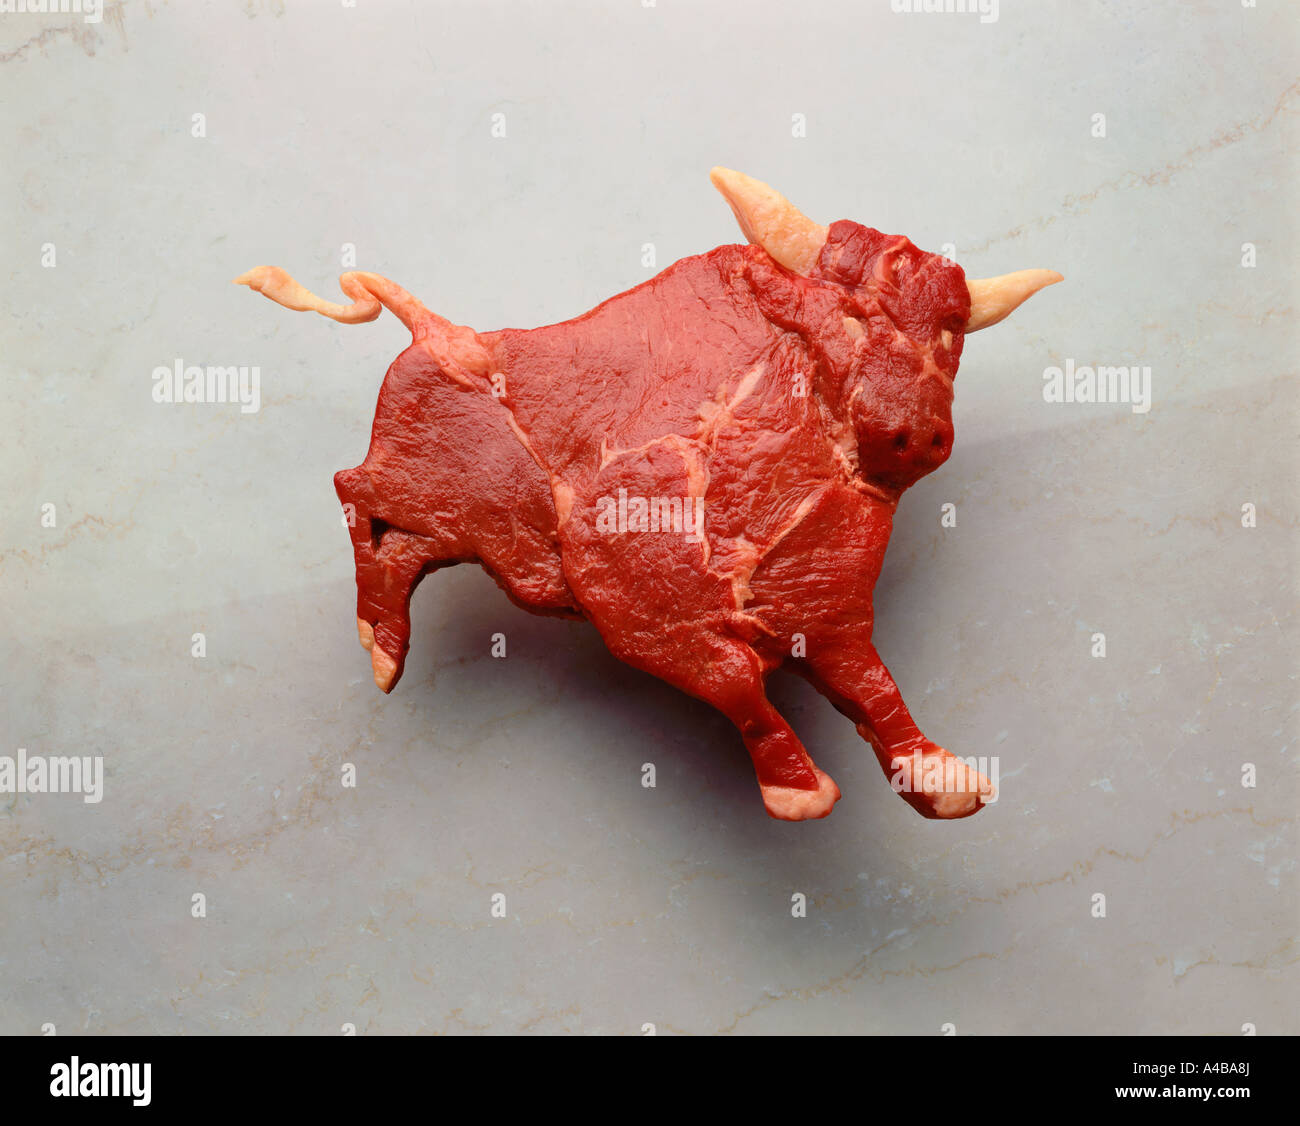 Raw meat shaped liked a bull - Stock Image